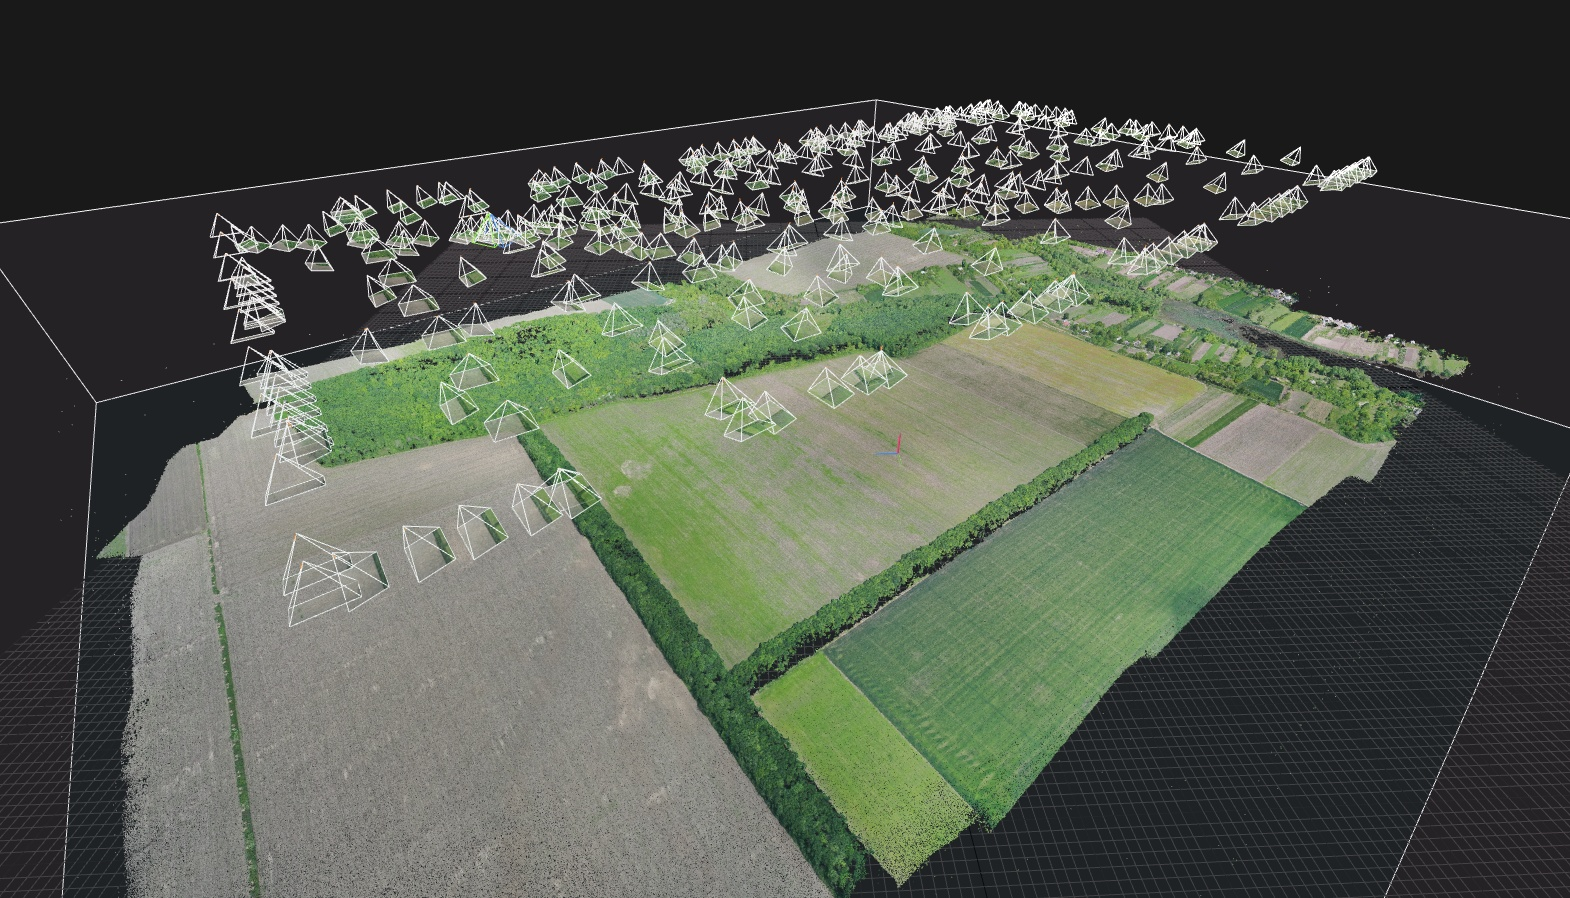 UAV photogrammetry